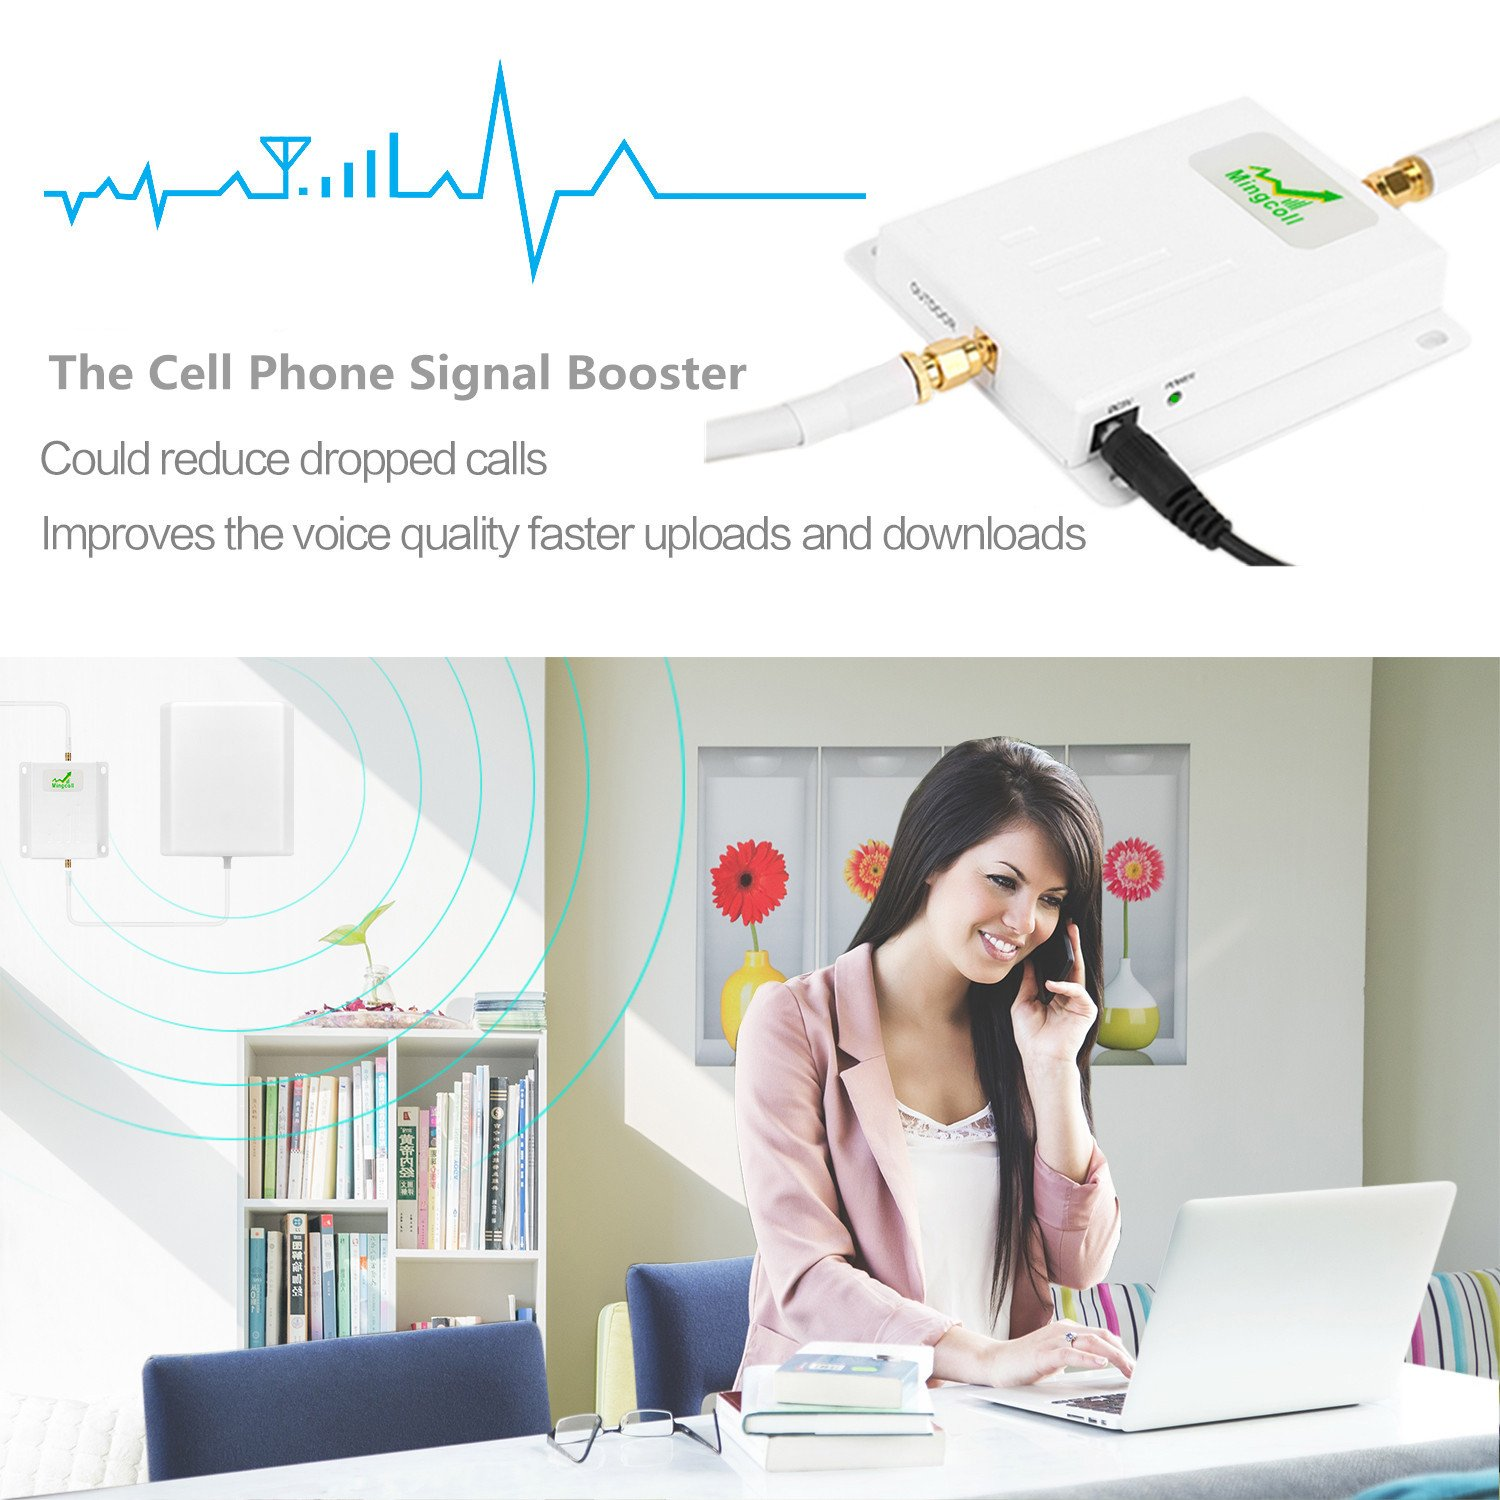 Mingcoll Cell Signal Booster ATT 850MHz 2G 3G Band 5 Cell Phone Signal Repeater Booster With Outdoor Yagi Antenna Kit for Home and Office (ATT 2G 3G) by Mingcoll (Image #6)